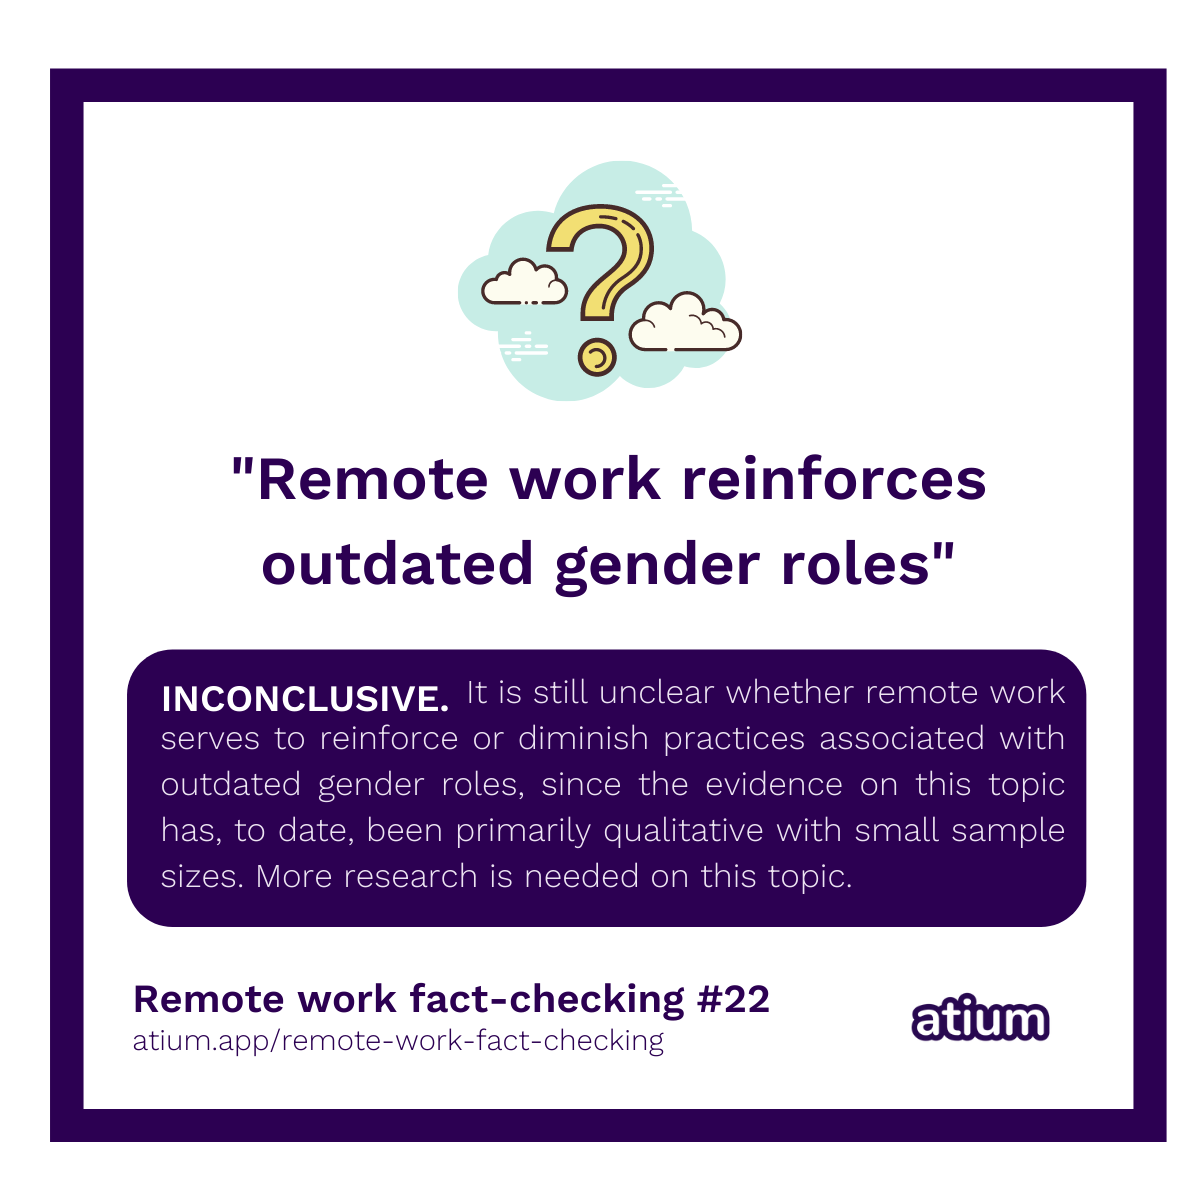 Remote work reinforces outdated gender roles